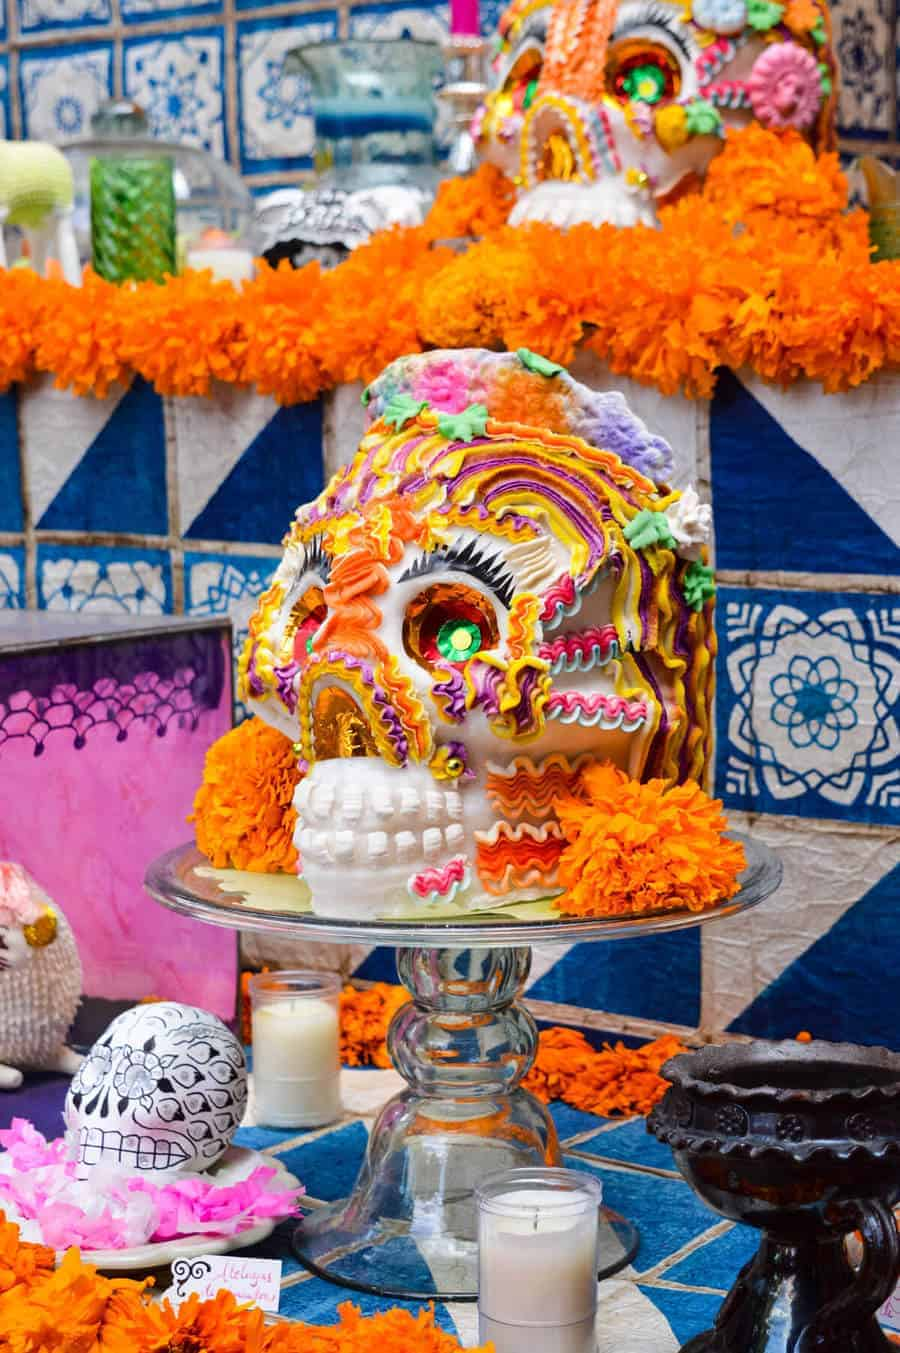 Day of the Dead - Mexico, Oaxaca www.recipetineats.com